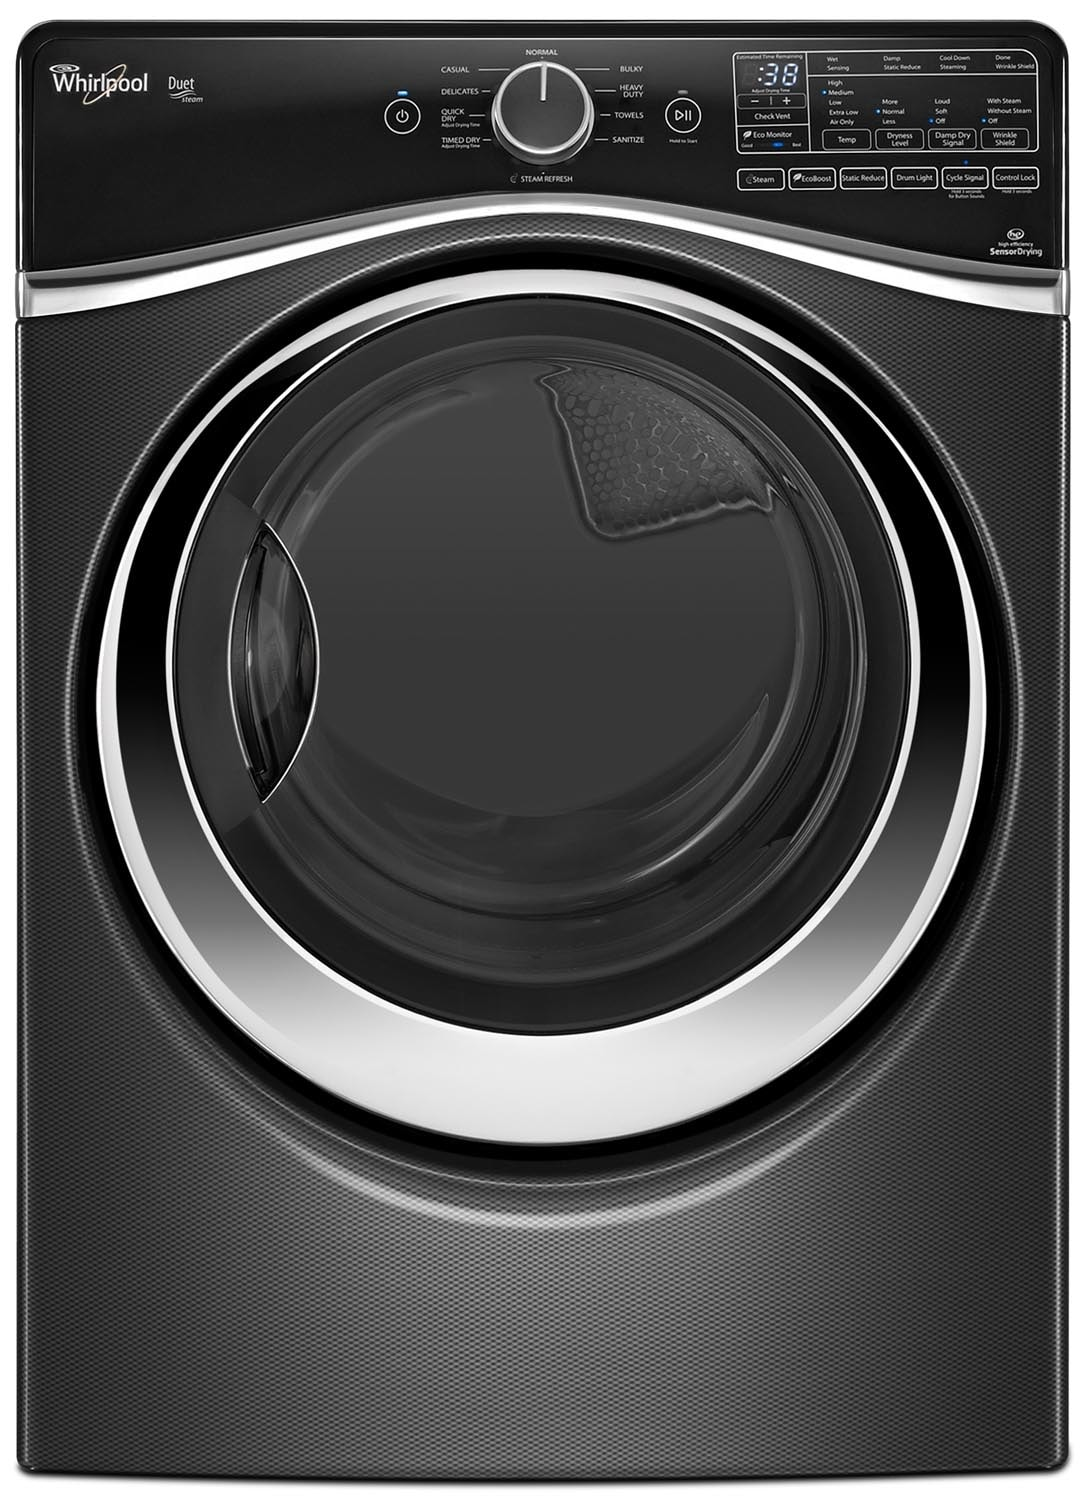 Washers and Dryers - Whirlpool Dryer (7.3 Cu. Ft.) YWED97HEDBD